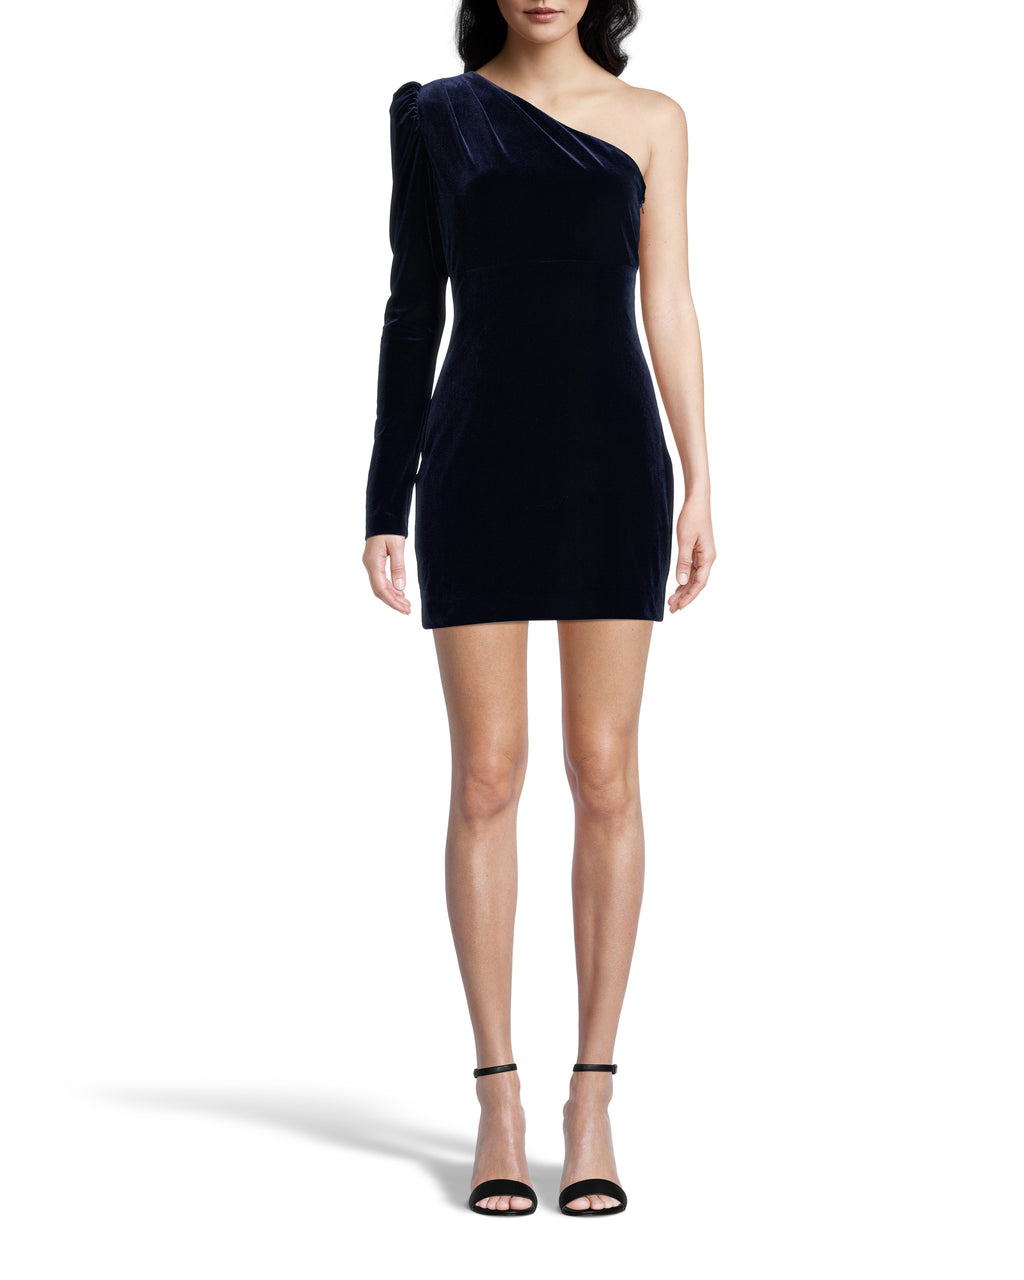 CE18476 - ONE SHOULDER VELVET MINI DRESS - dresses - short - Crafted from deep navy velvet, this perfect party dress flatters all body types. One shoulder with a puff sleeve and a slightly cinched waist. Add 1 line break Stylist tip: Pair with strappy sandals and sparkly earrings.